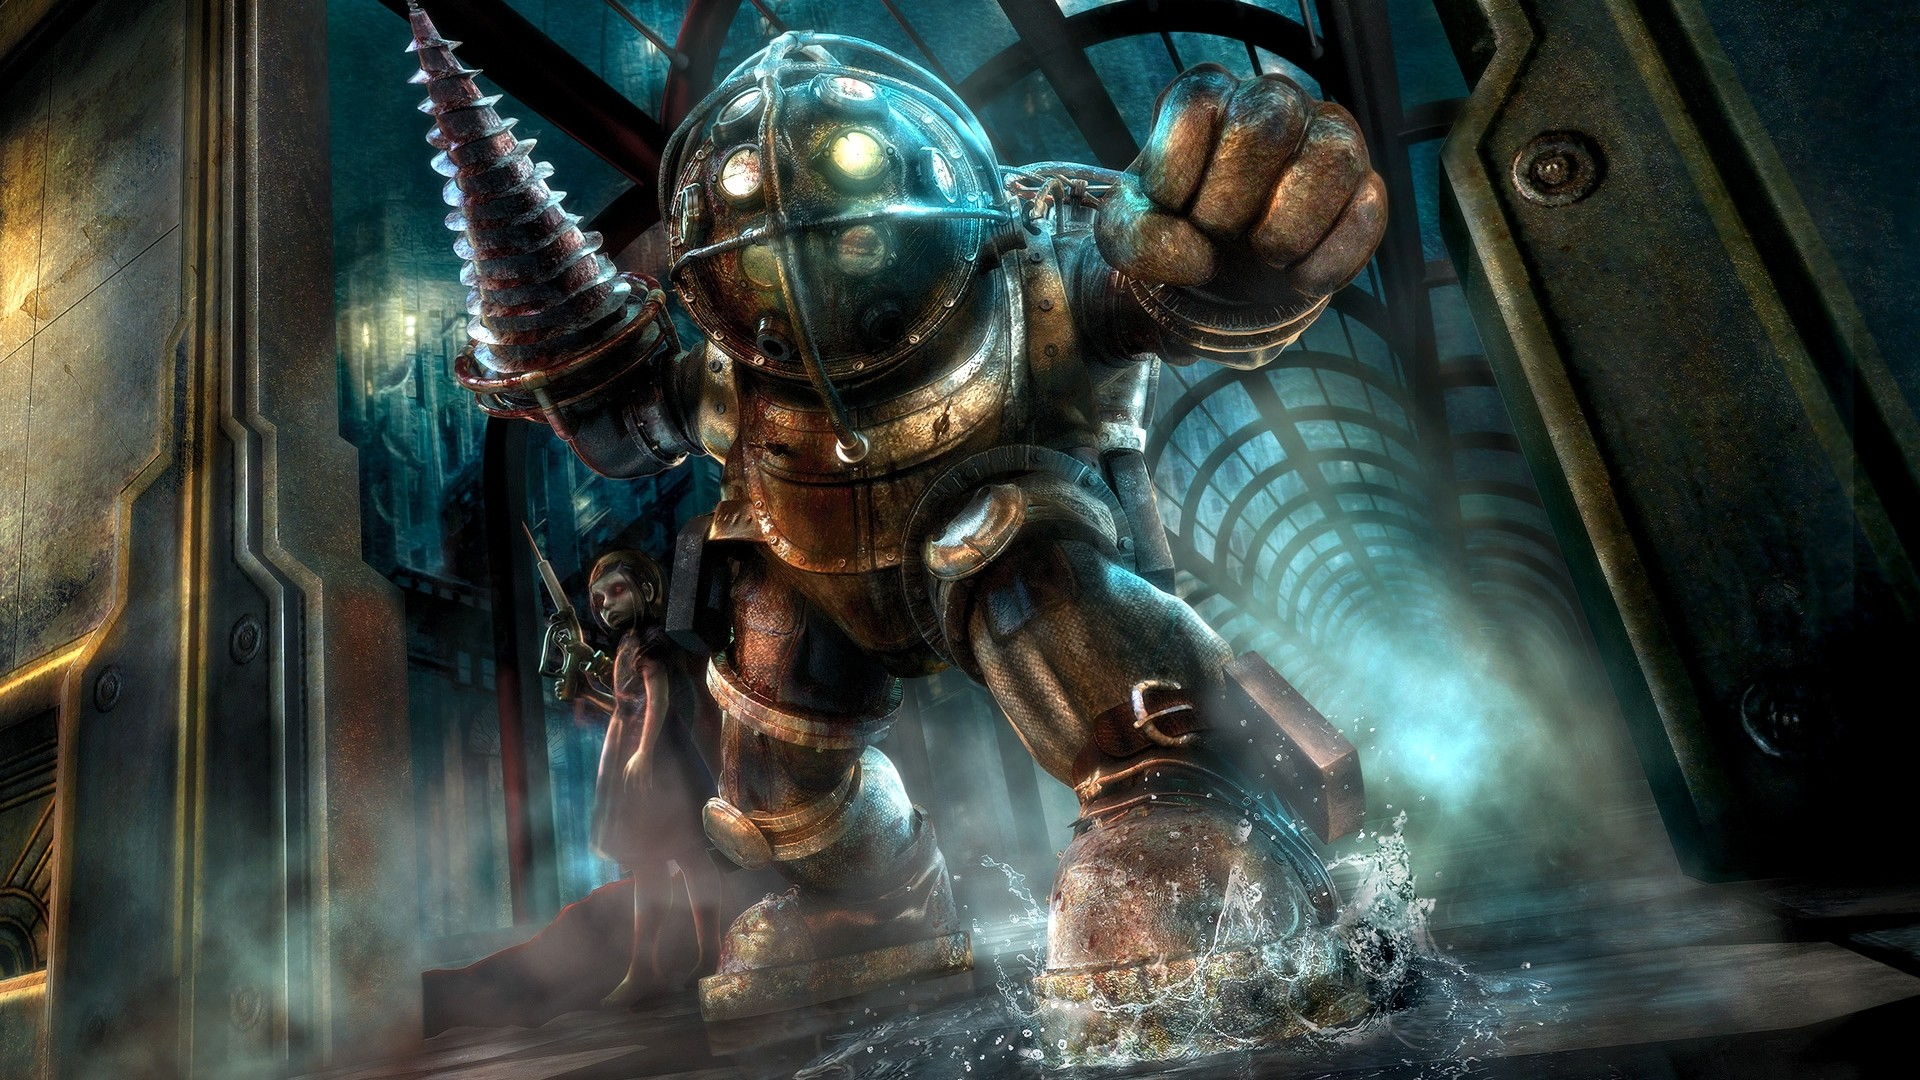 Bioshock Wallpaper 1 Download Free Amazing Backgrounds For Desktop